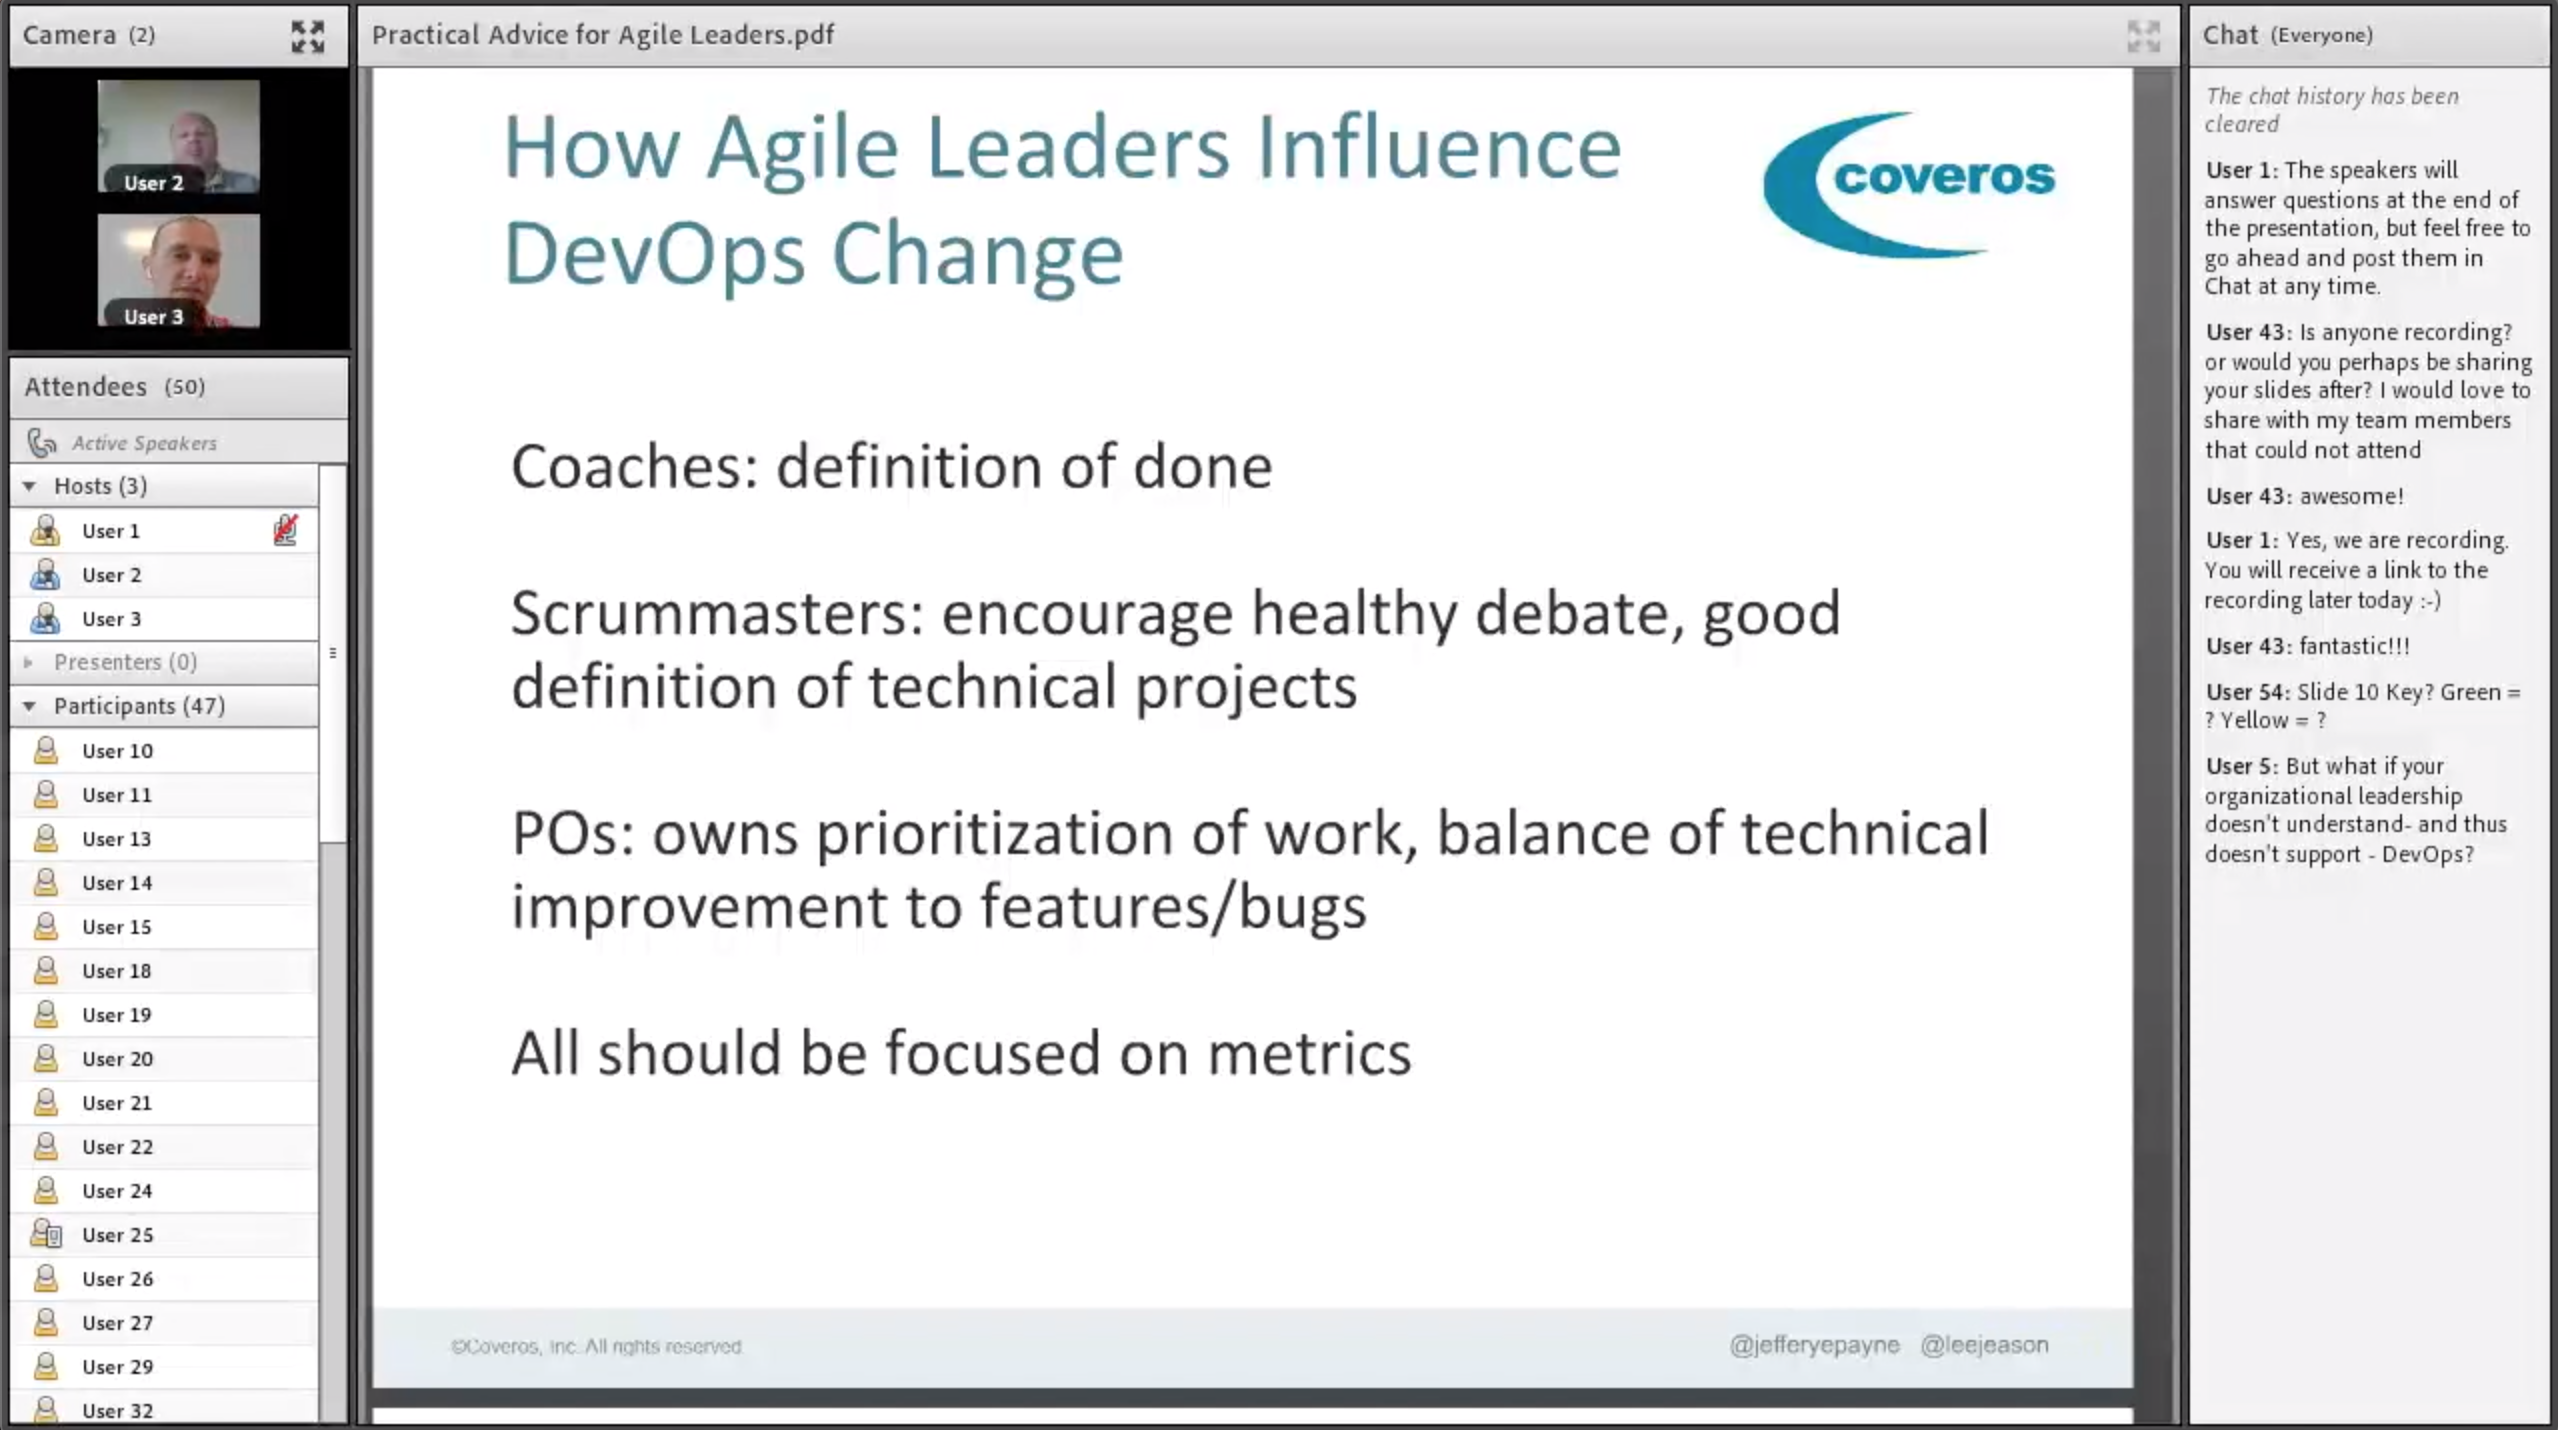 Practical Advice for Agile Leaders During DevOps Transformations web seminar